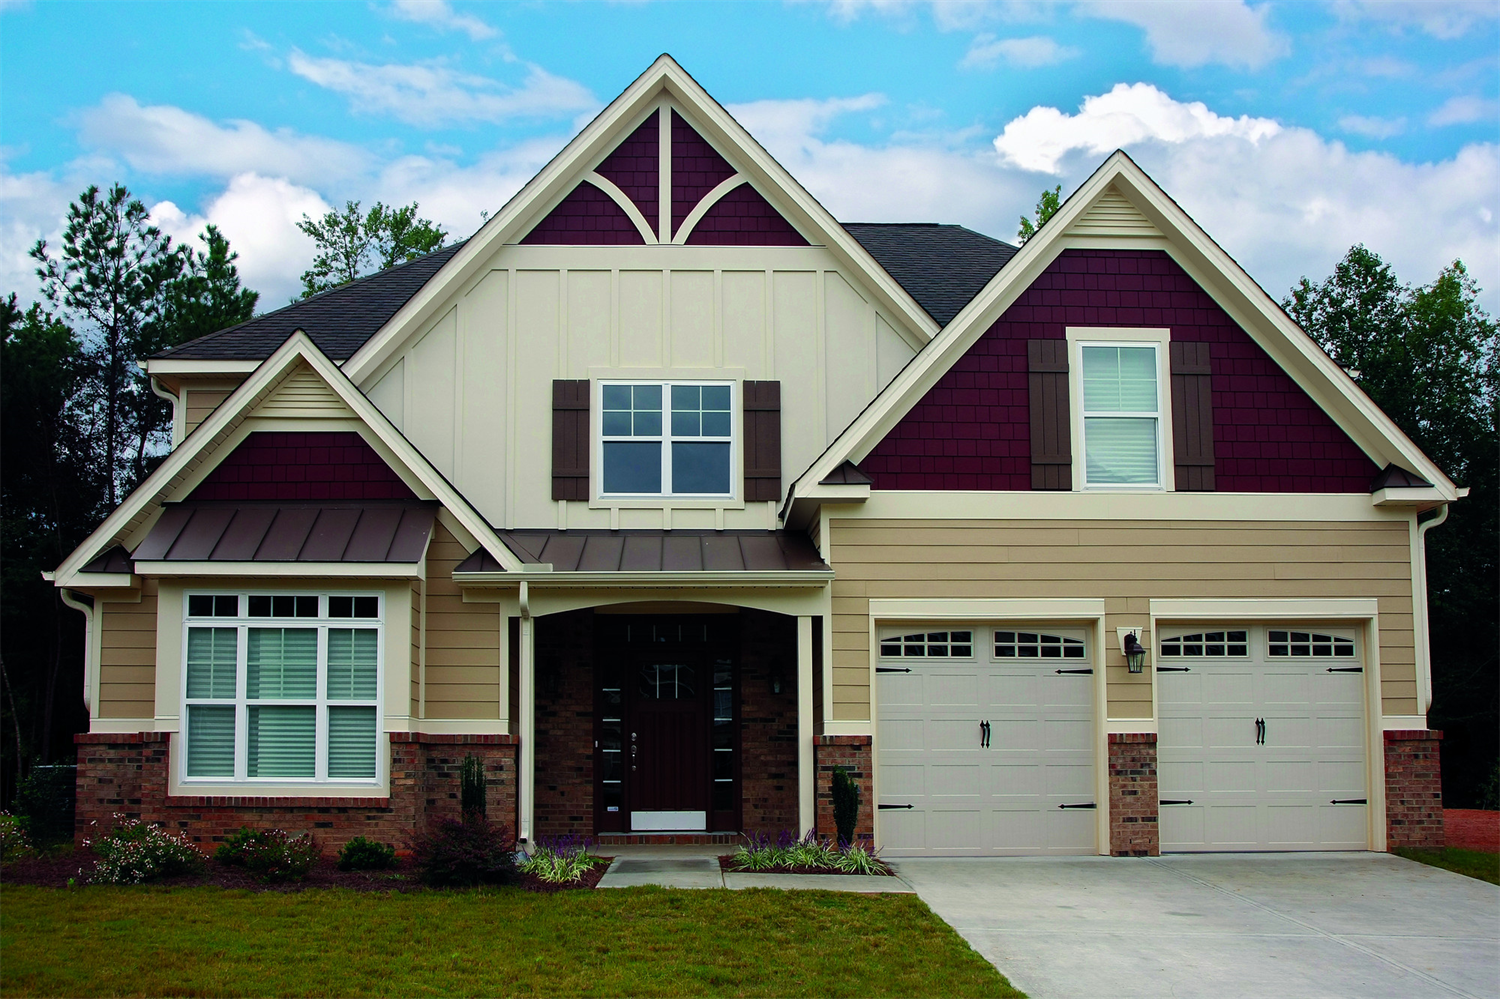 James Hardie Countrylane Red Accents Design Ideas Photo Showcase House Siding Siding Colors Tan House